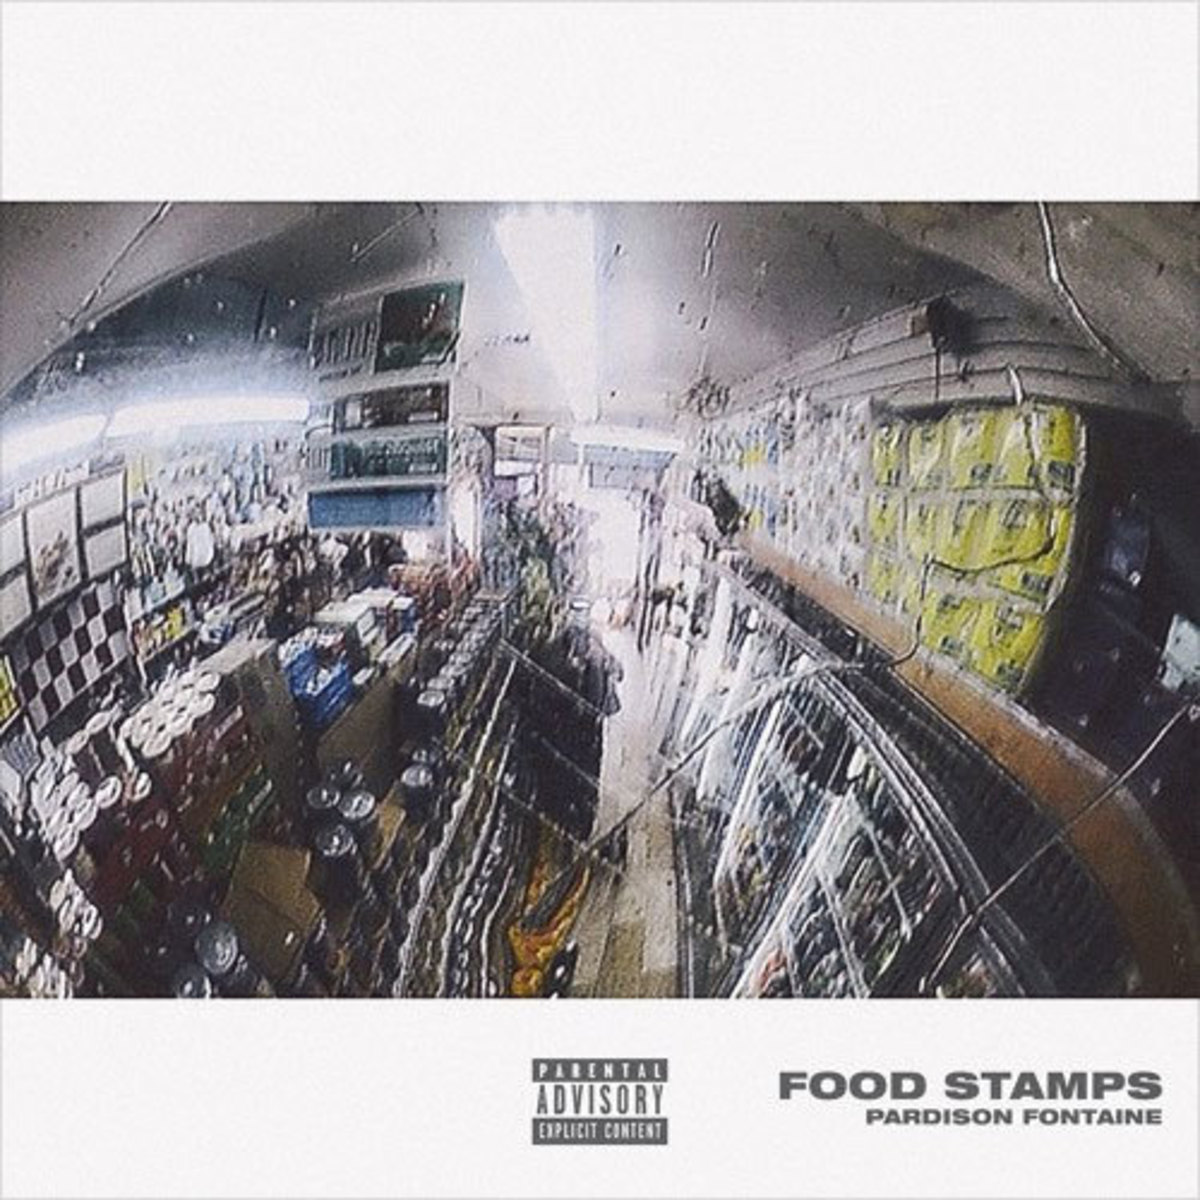 Pardison Fontaine Food Stamps